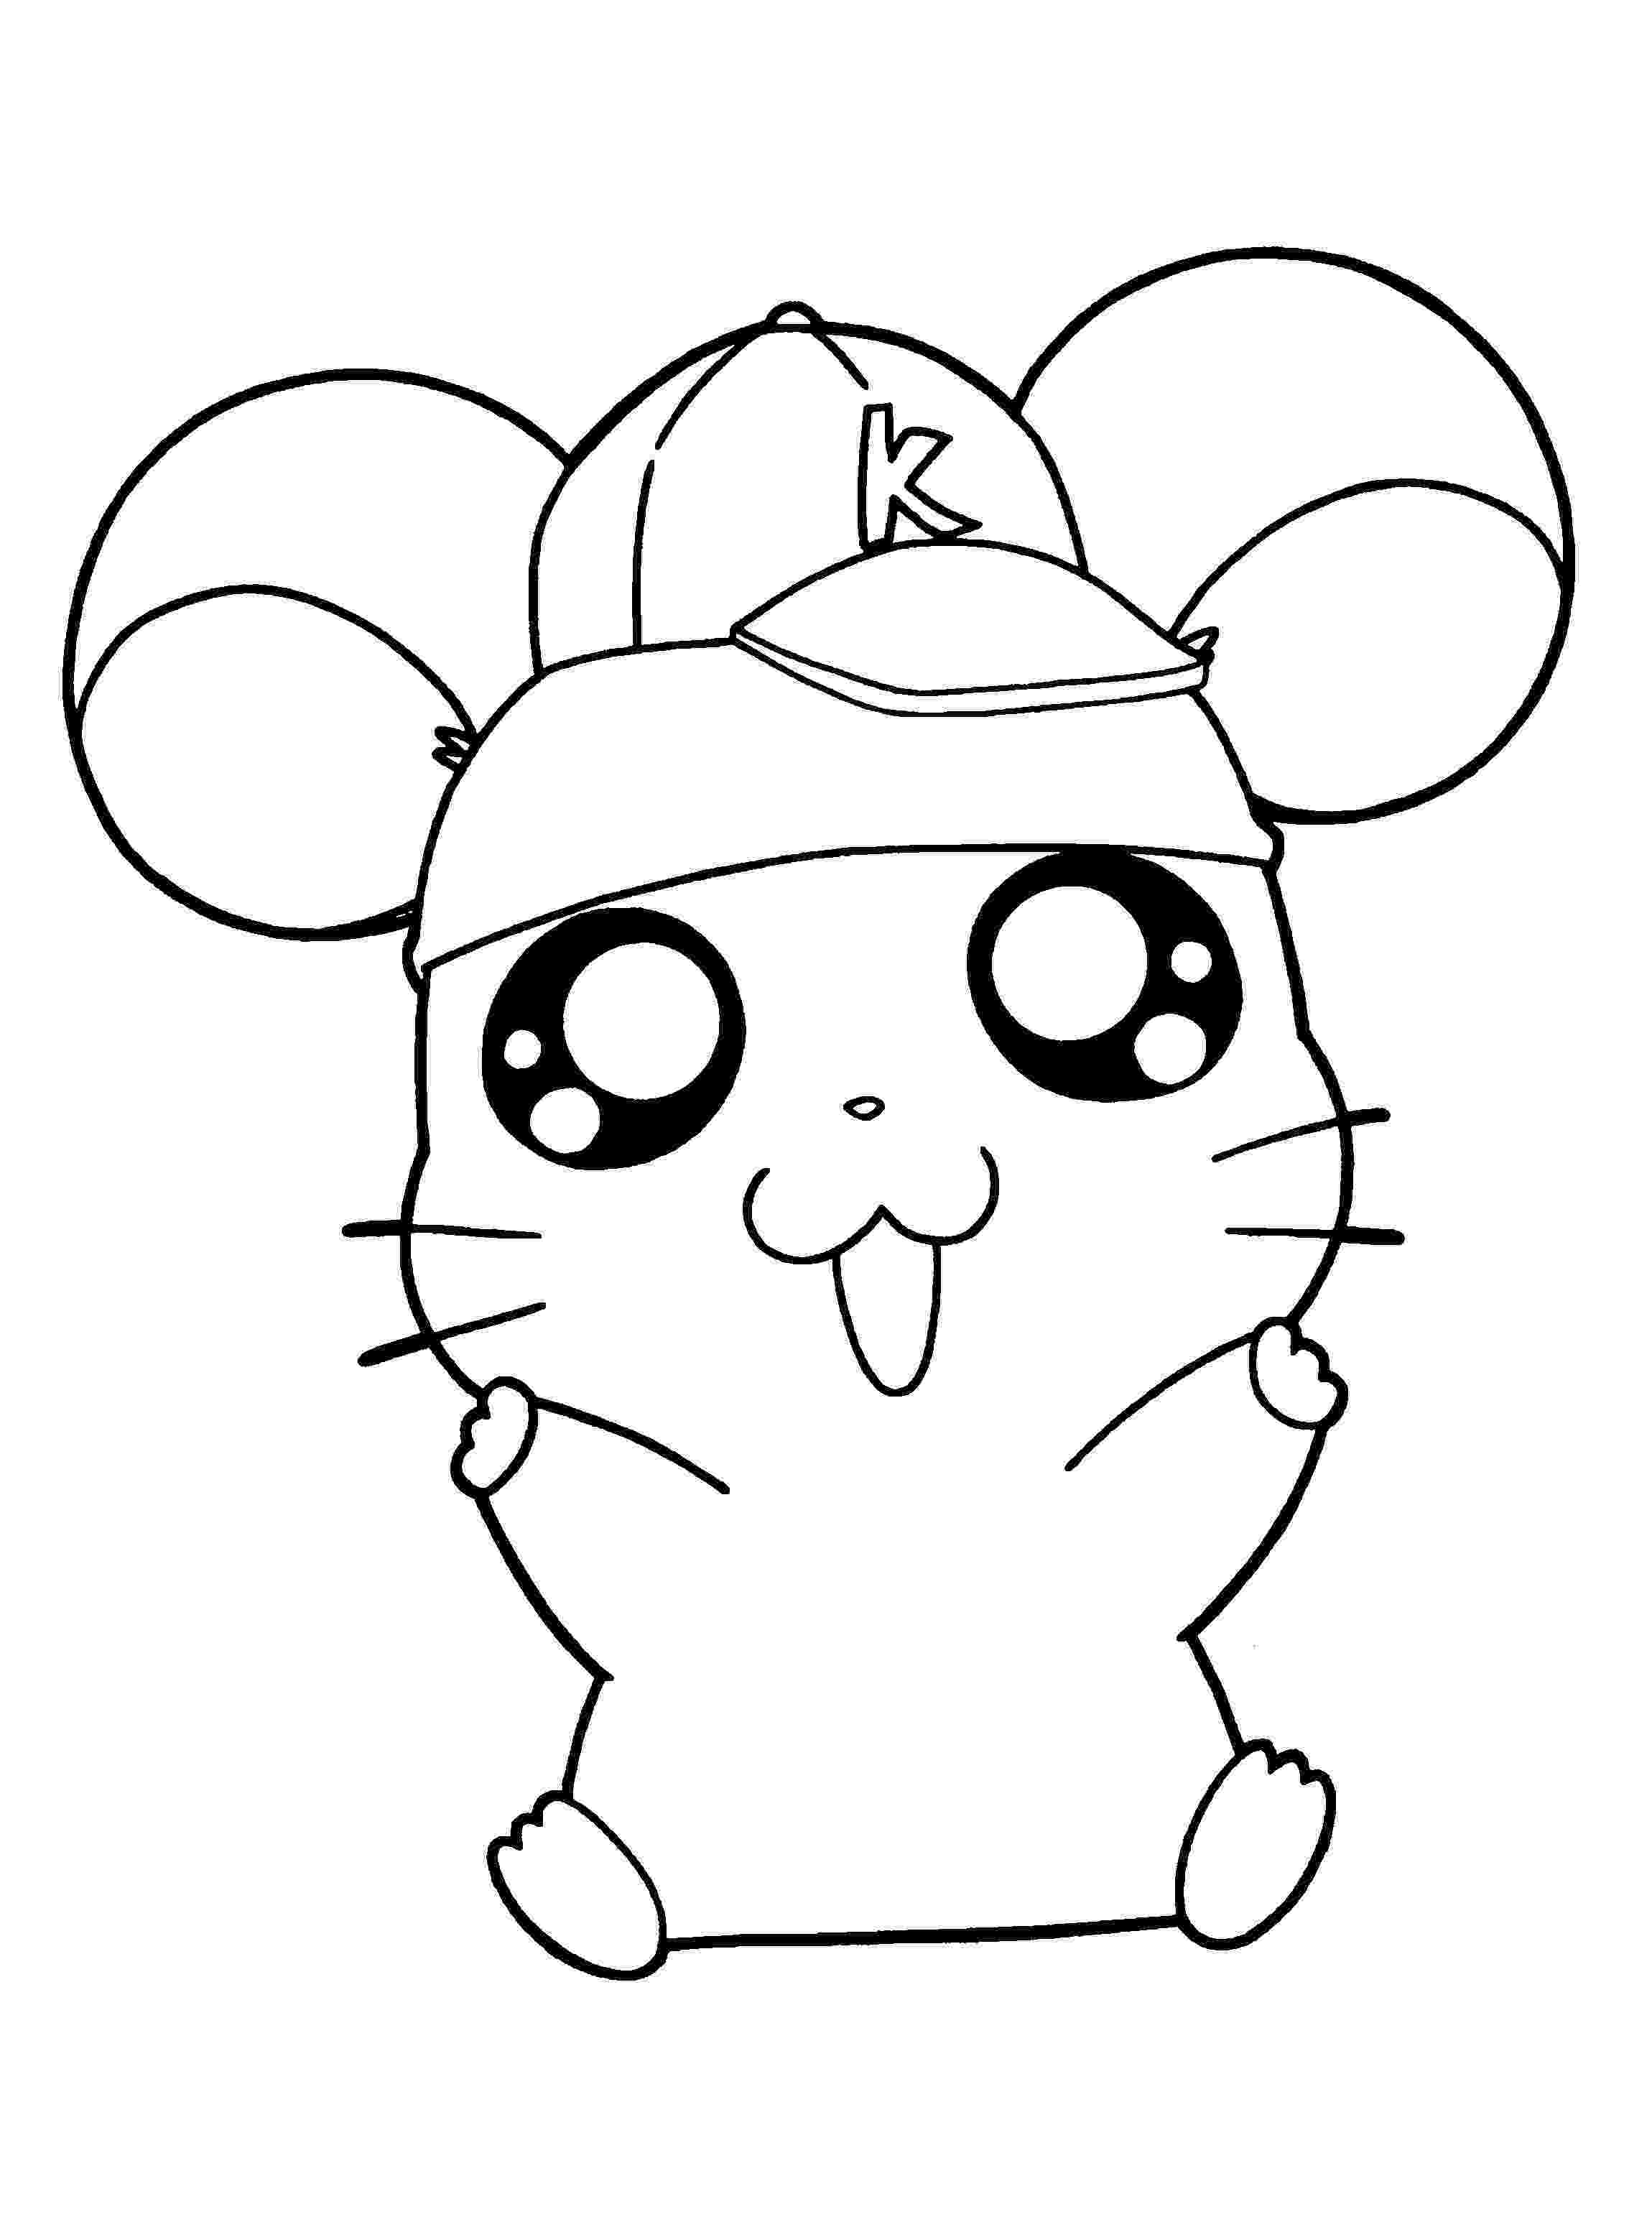 hamster coloring pages to print hamster coloring pages best coloring pages for kids print coloring to pages hamster